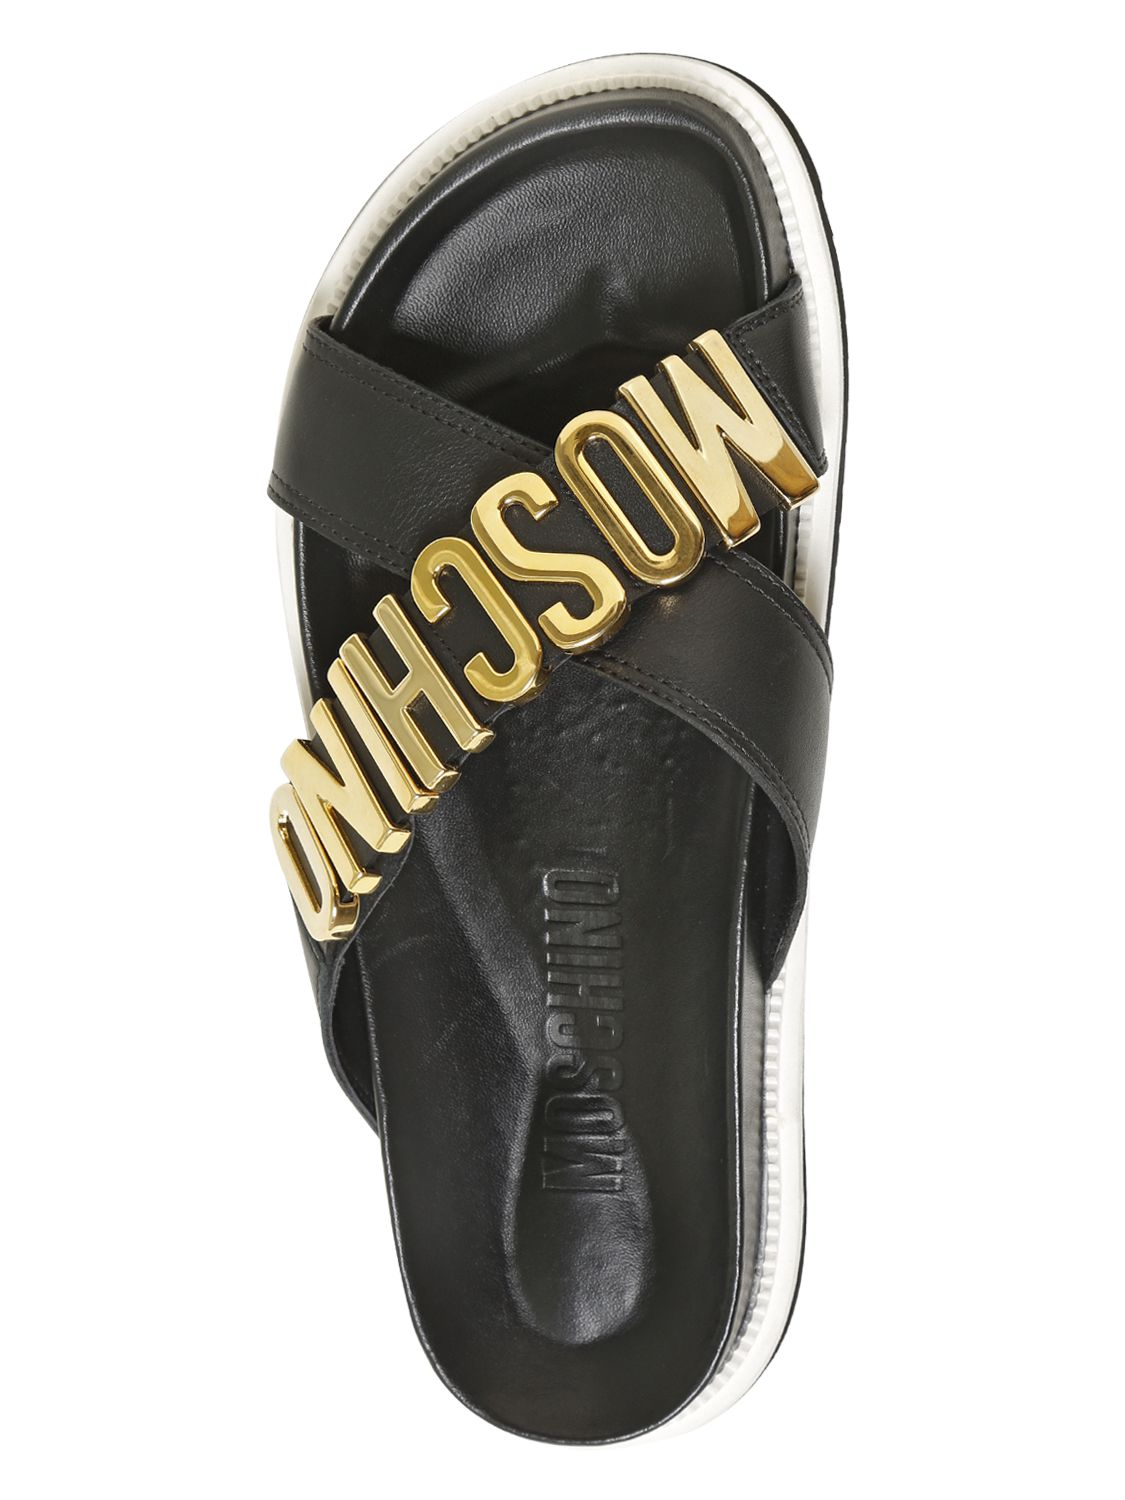 Lyst Moschino Logo Lettering Leather Slide Sandals In Black